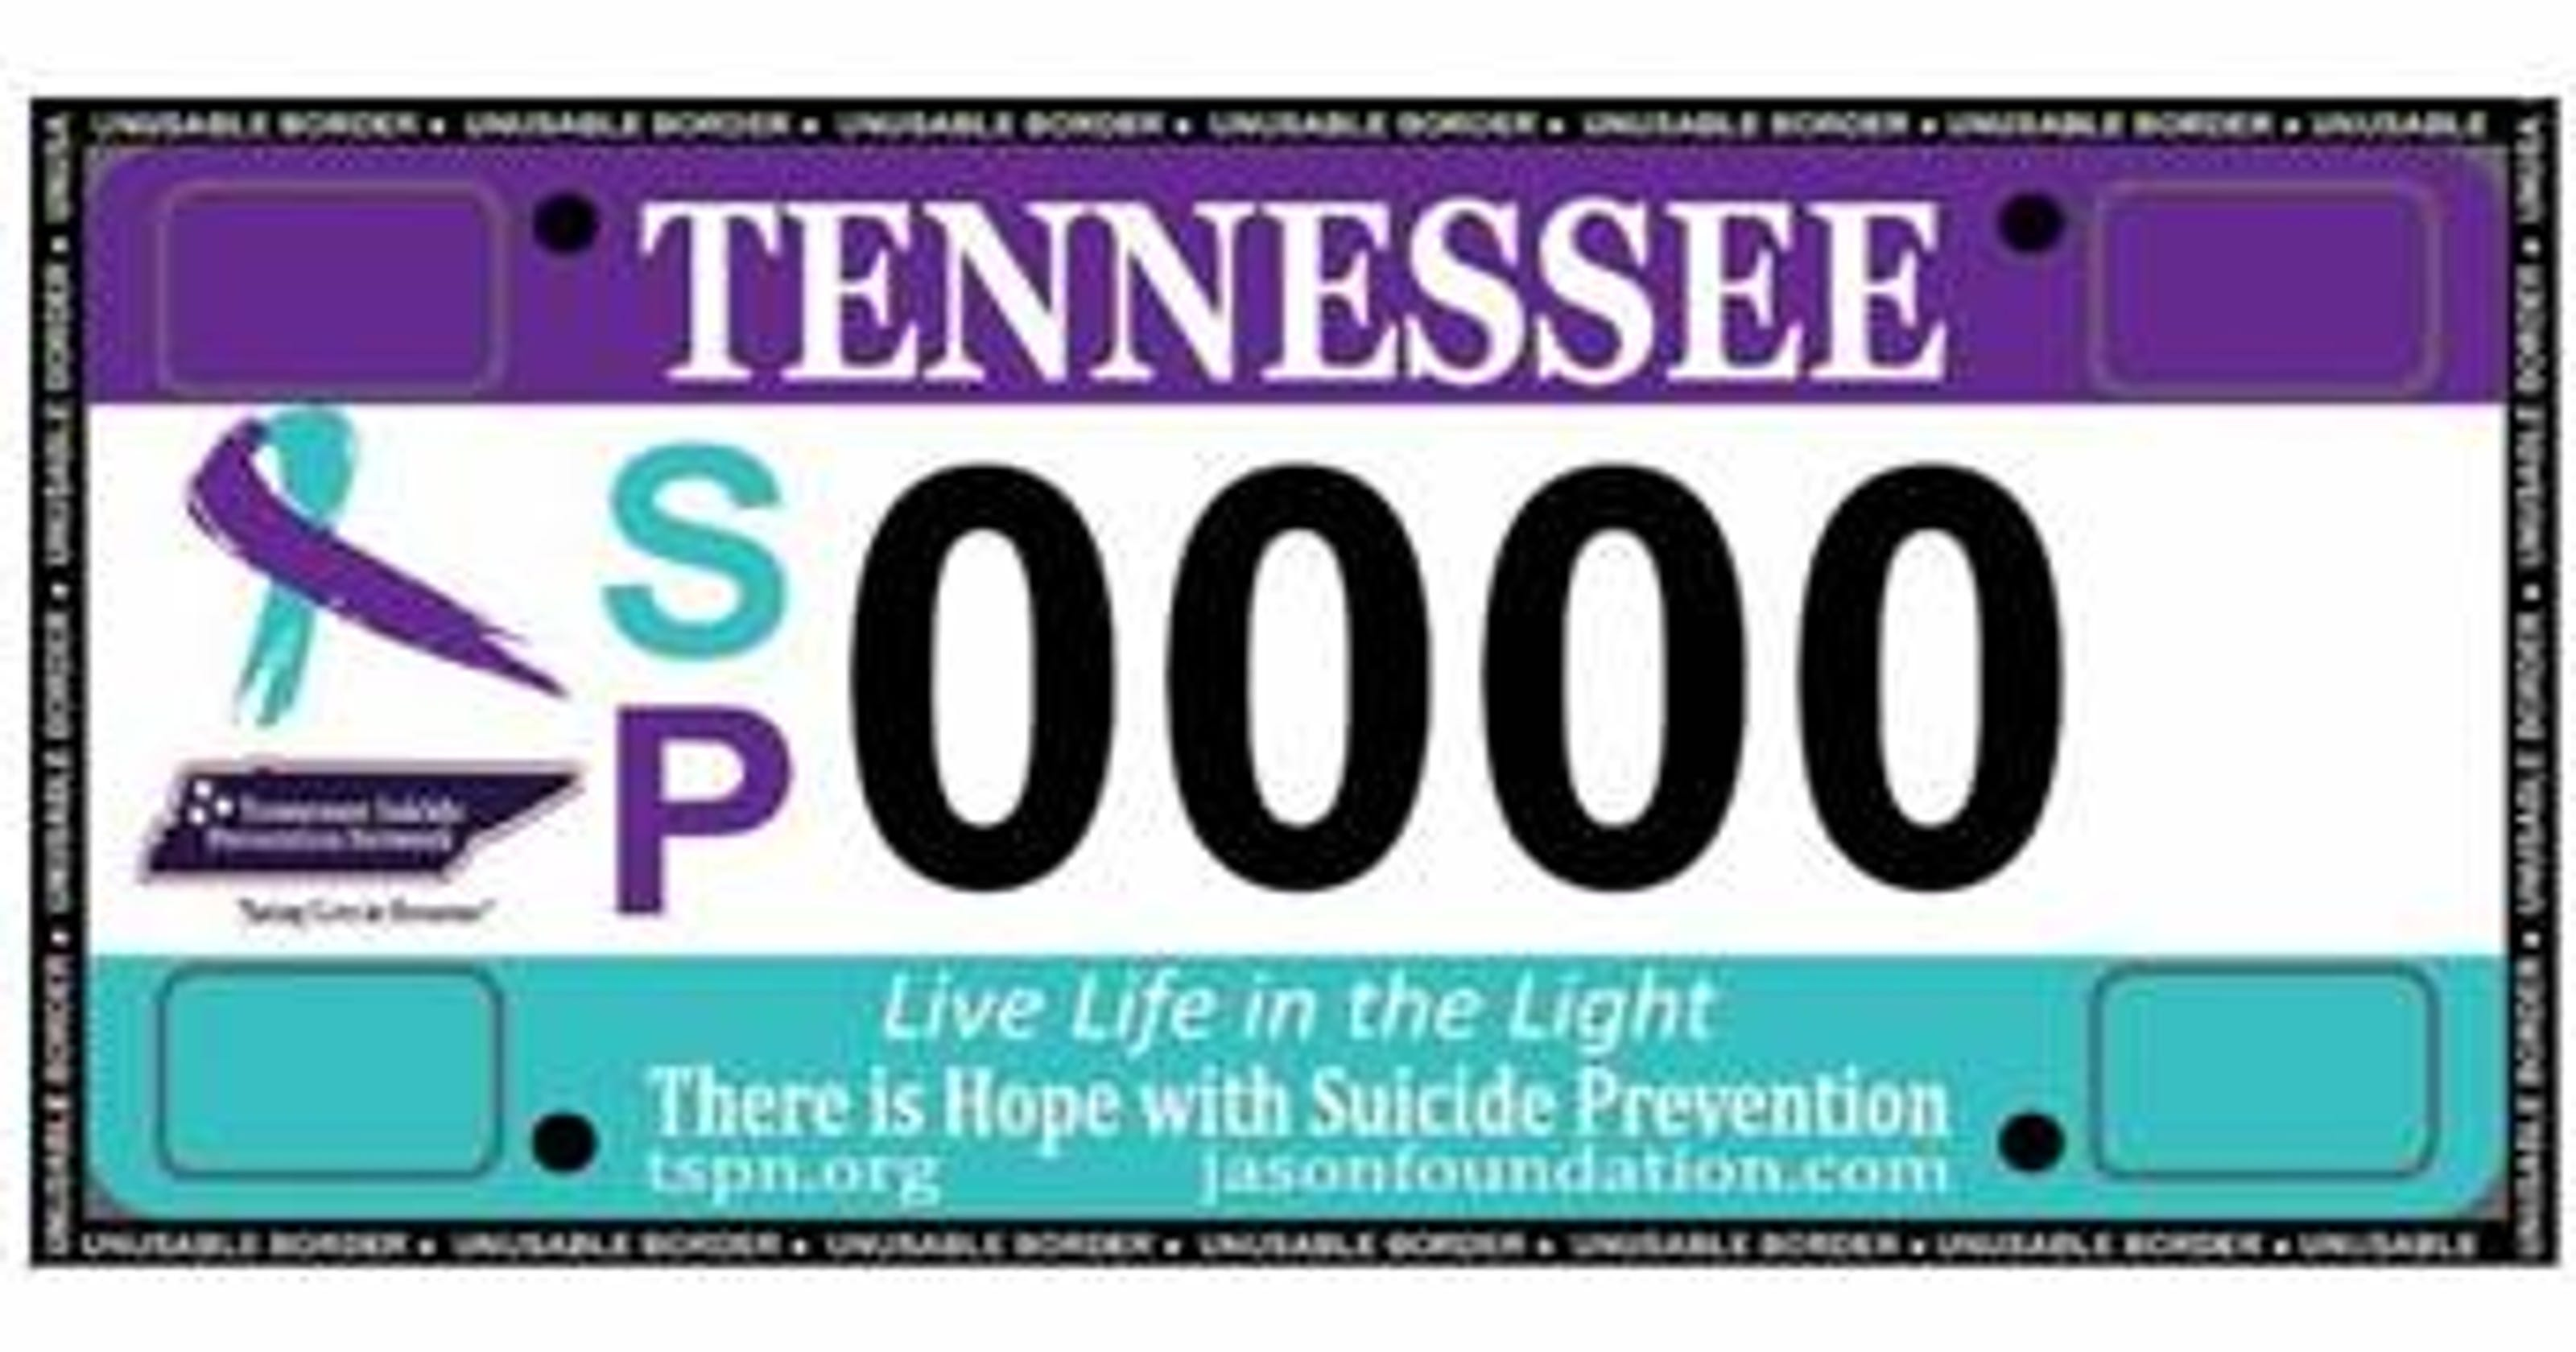 Suicide Prevention Network license plate awareness needs support